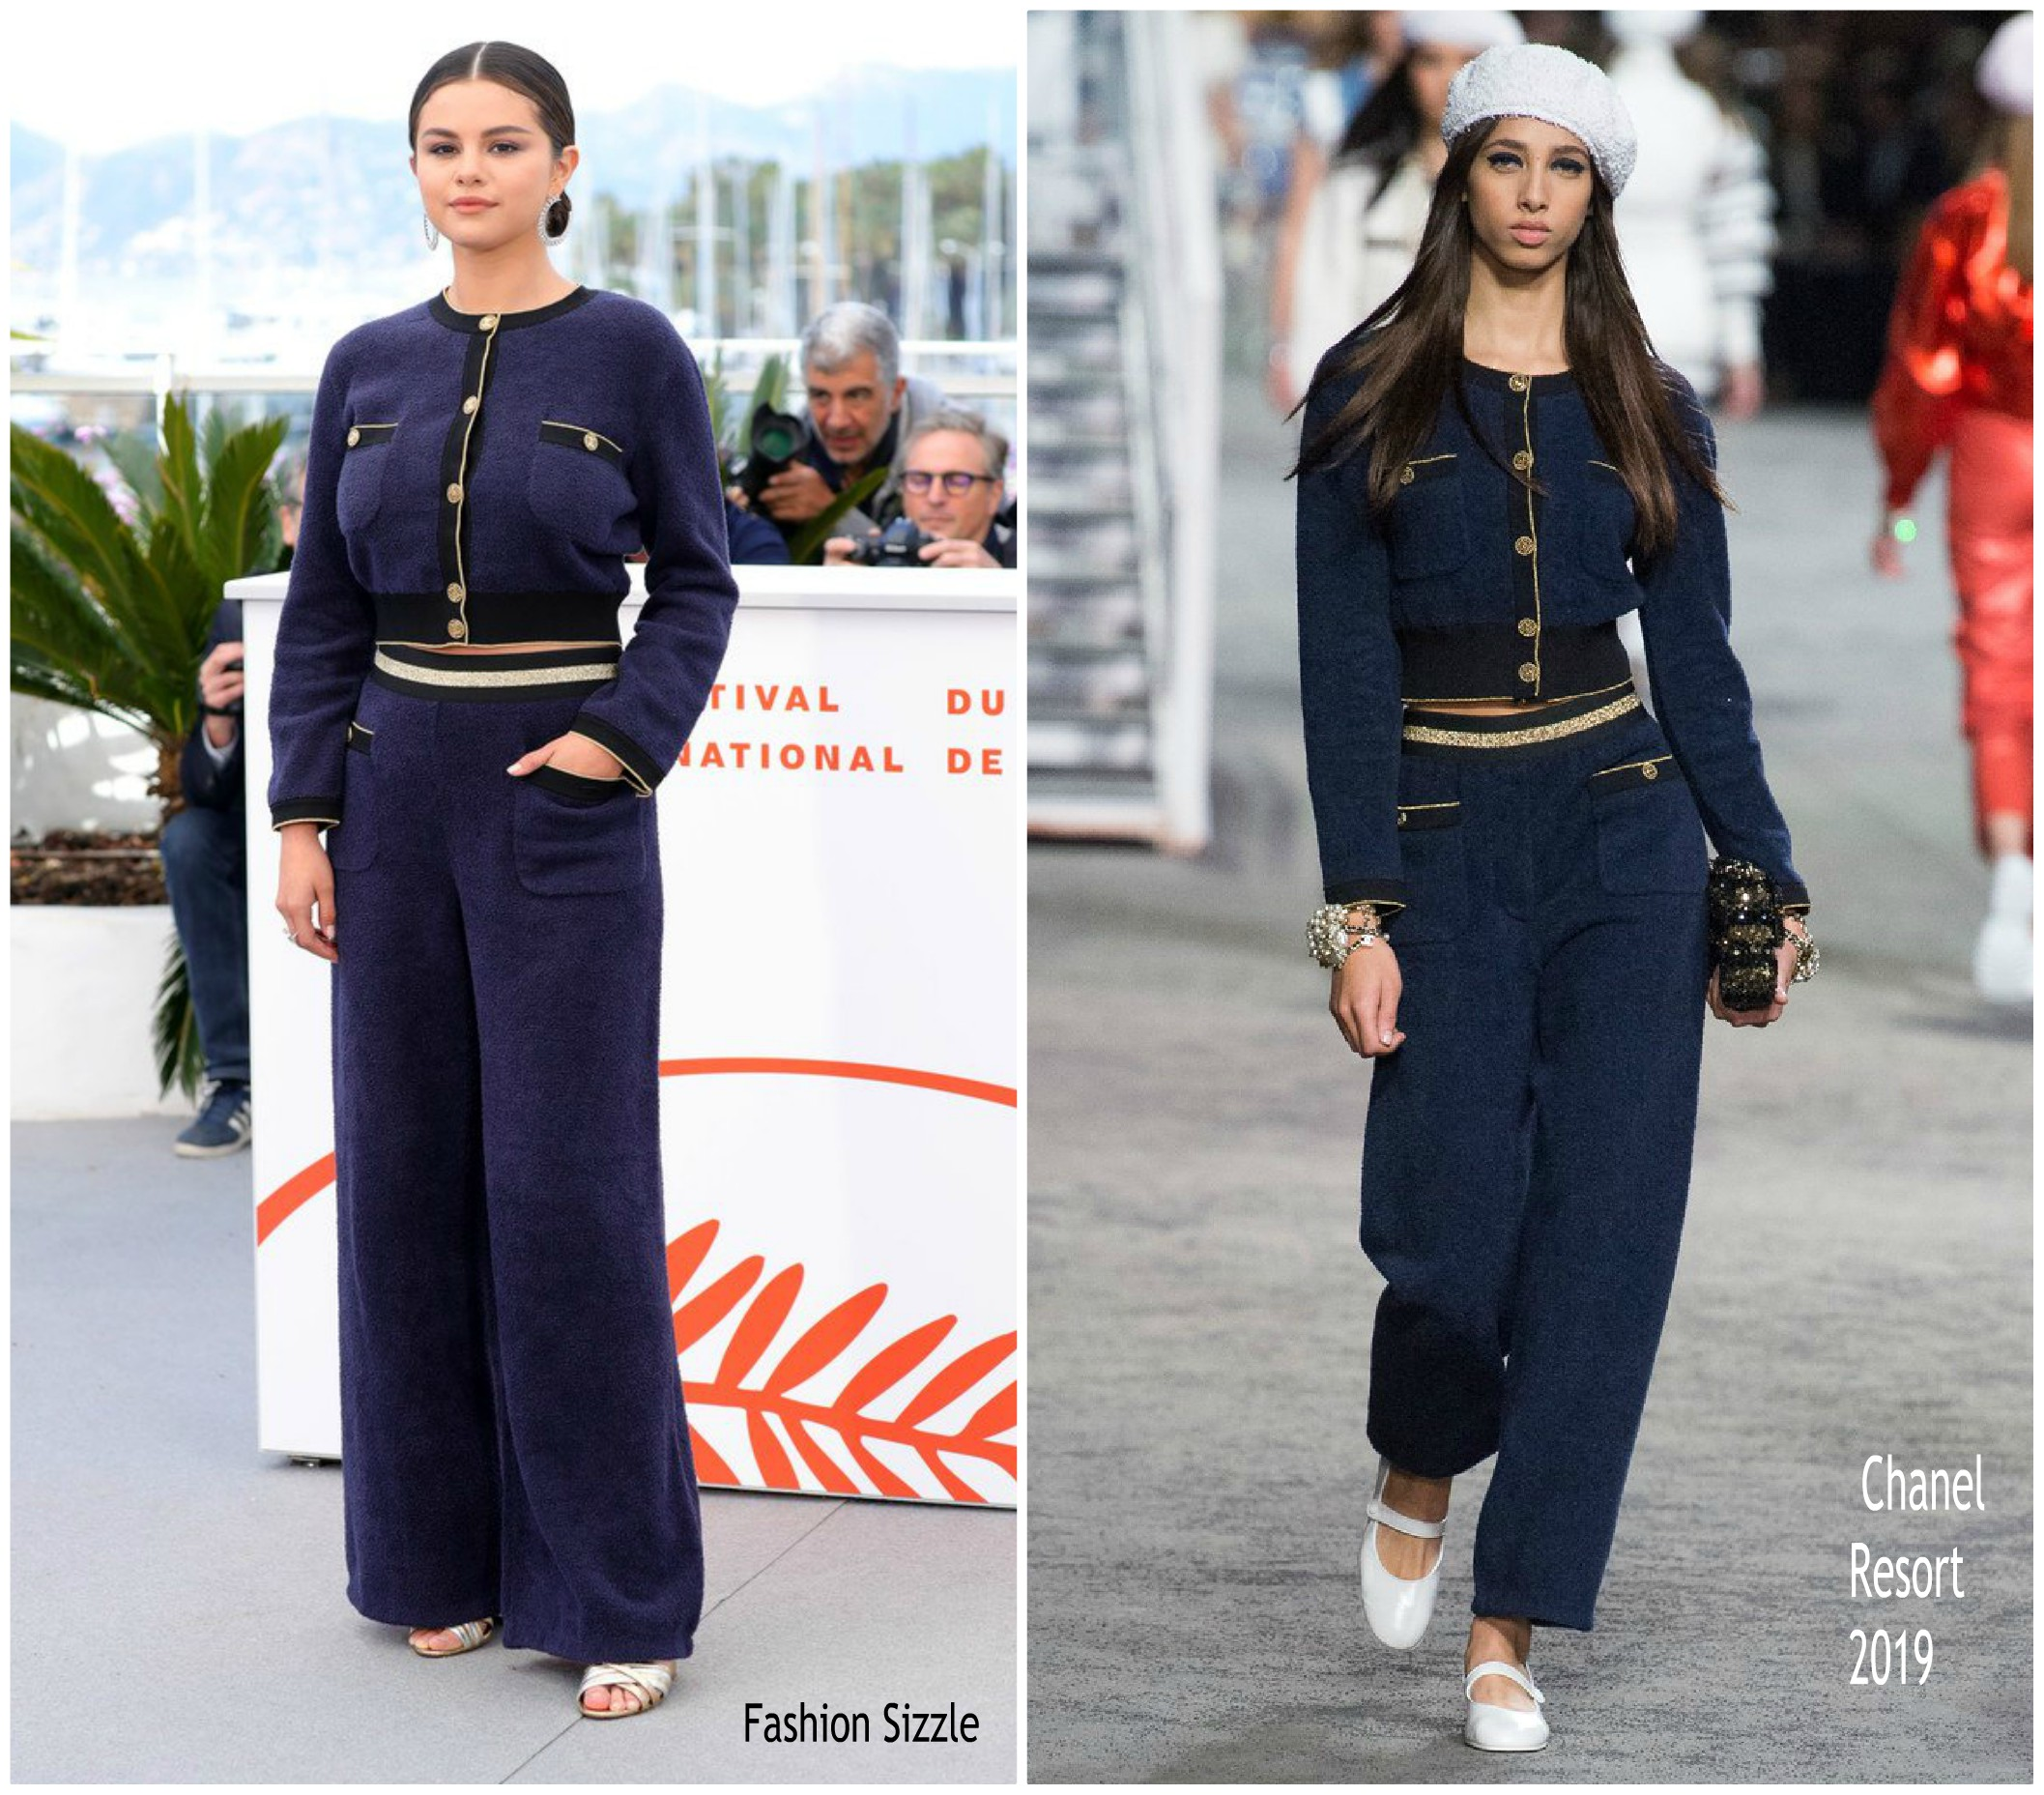 selena-gomez-in-chanel-the-dead-dont-die-cannes-ffilm-festival-photocall